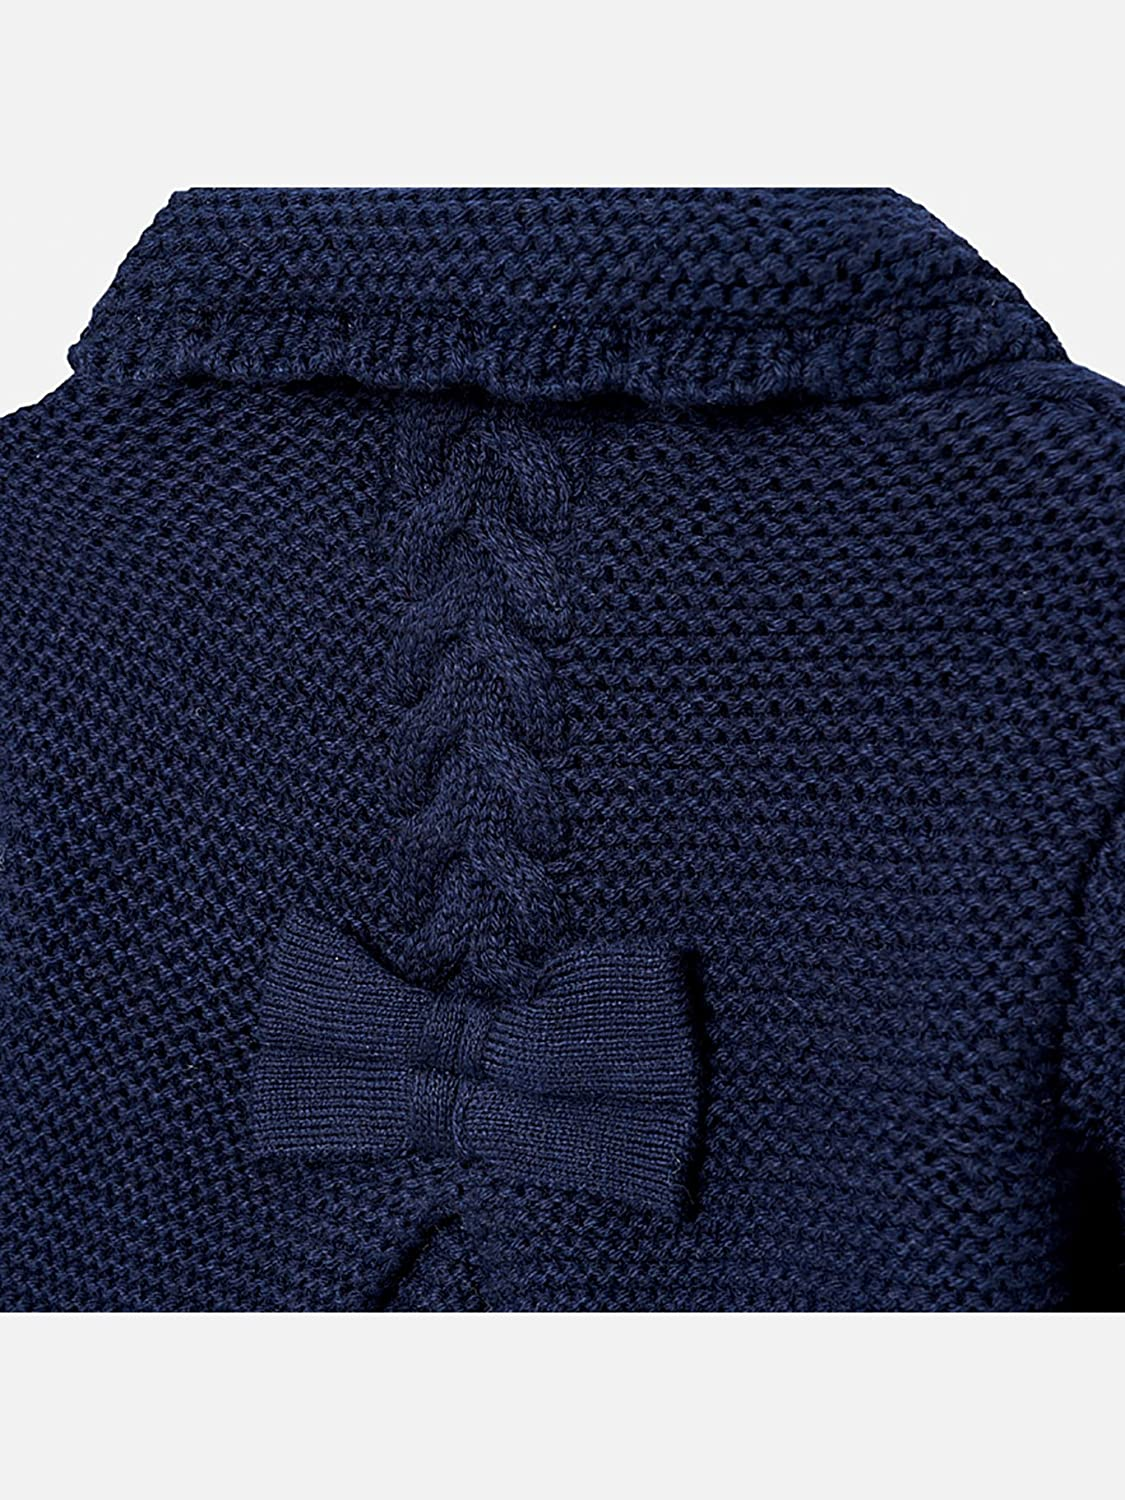 Mayoral Navy Knit Coat for Baby-Girls 2476